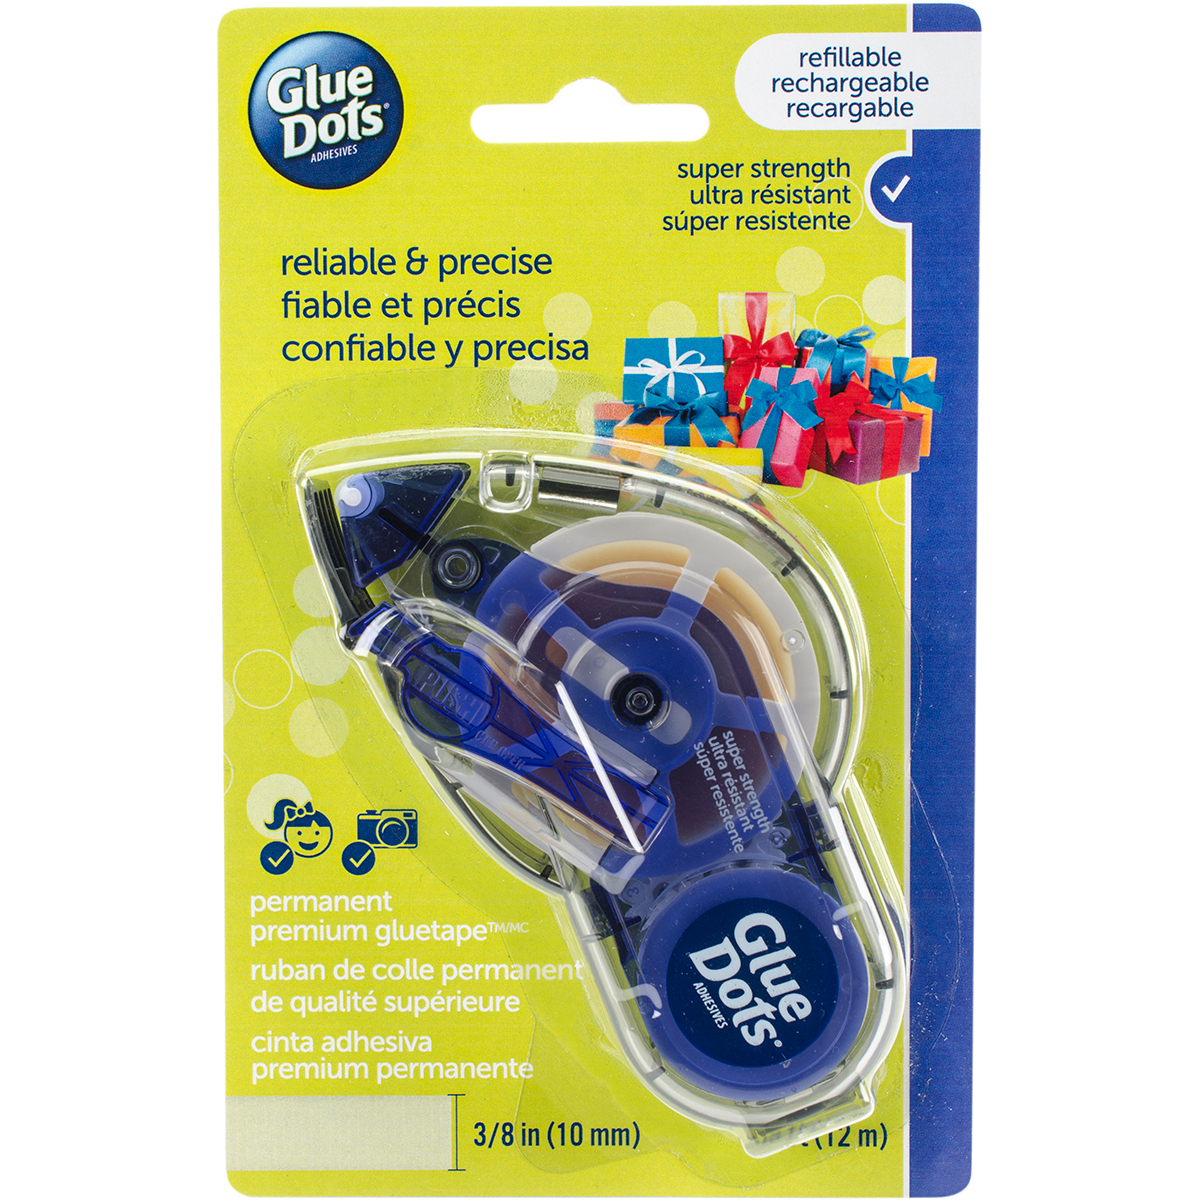 Glue Dots Refillable Runner 3/8